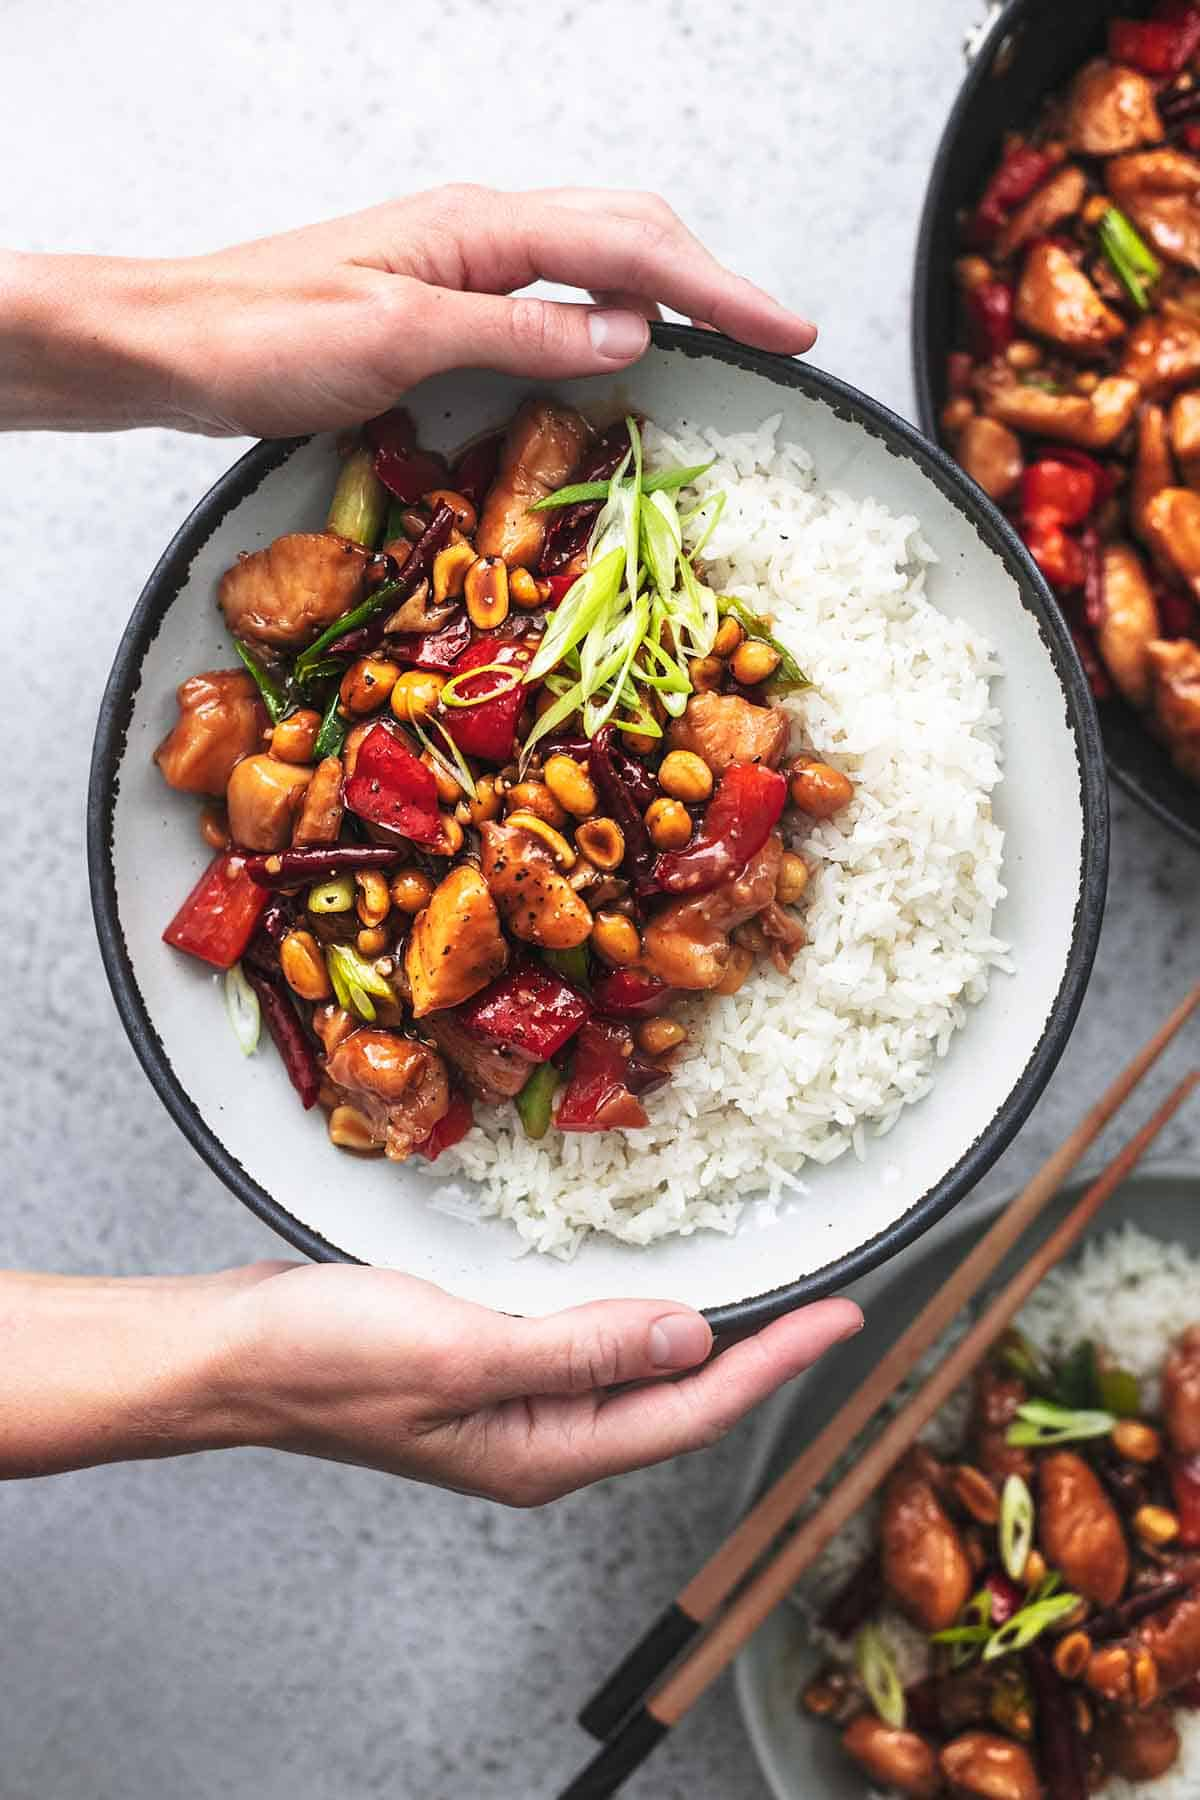 top view of hands holding a plate of kung pao chicken with rice.